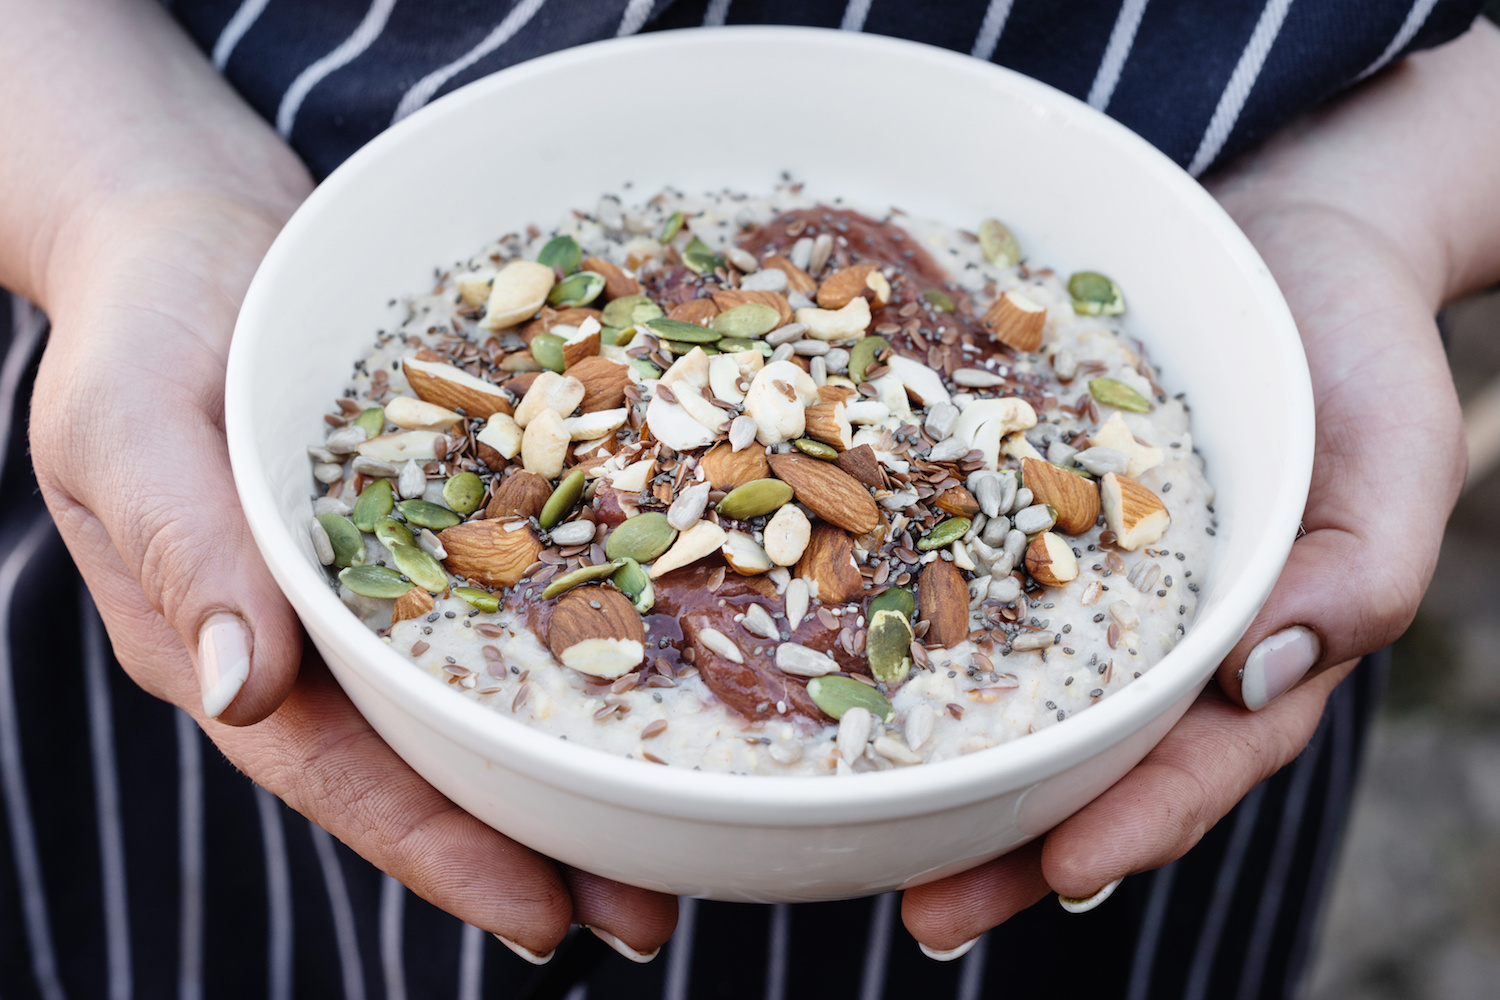 In 2016 it's all about the toppings: seeds, nuts and everything that's tasty and nutritious